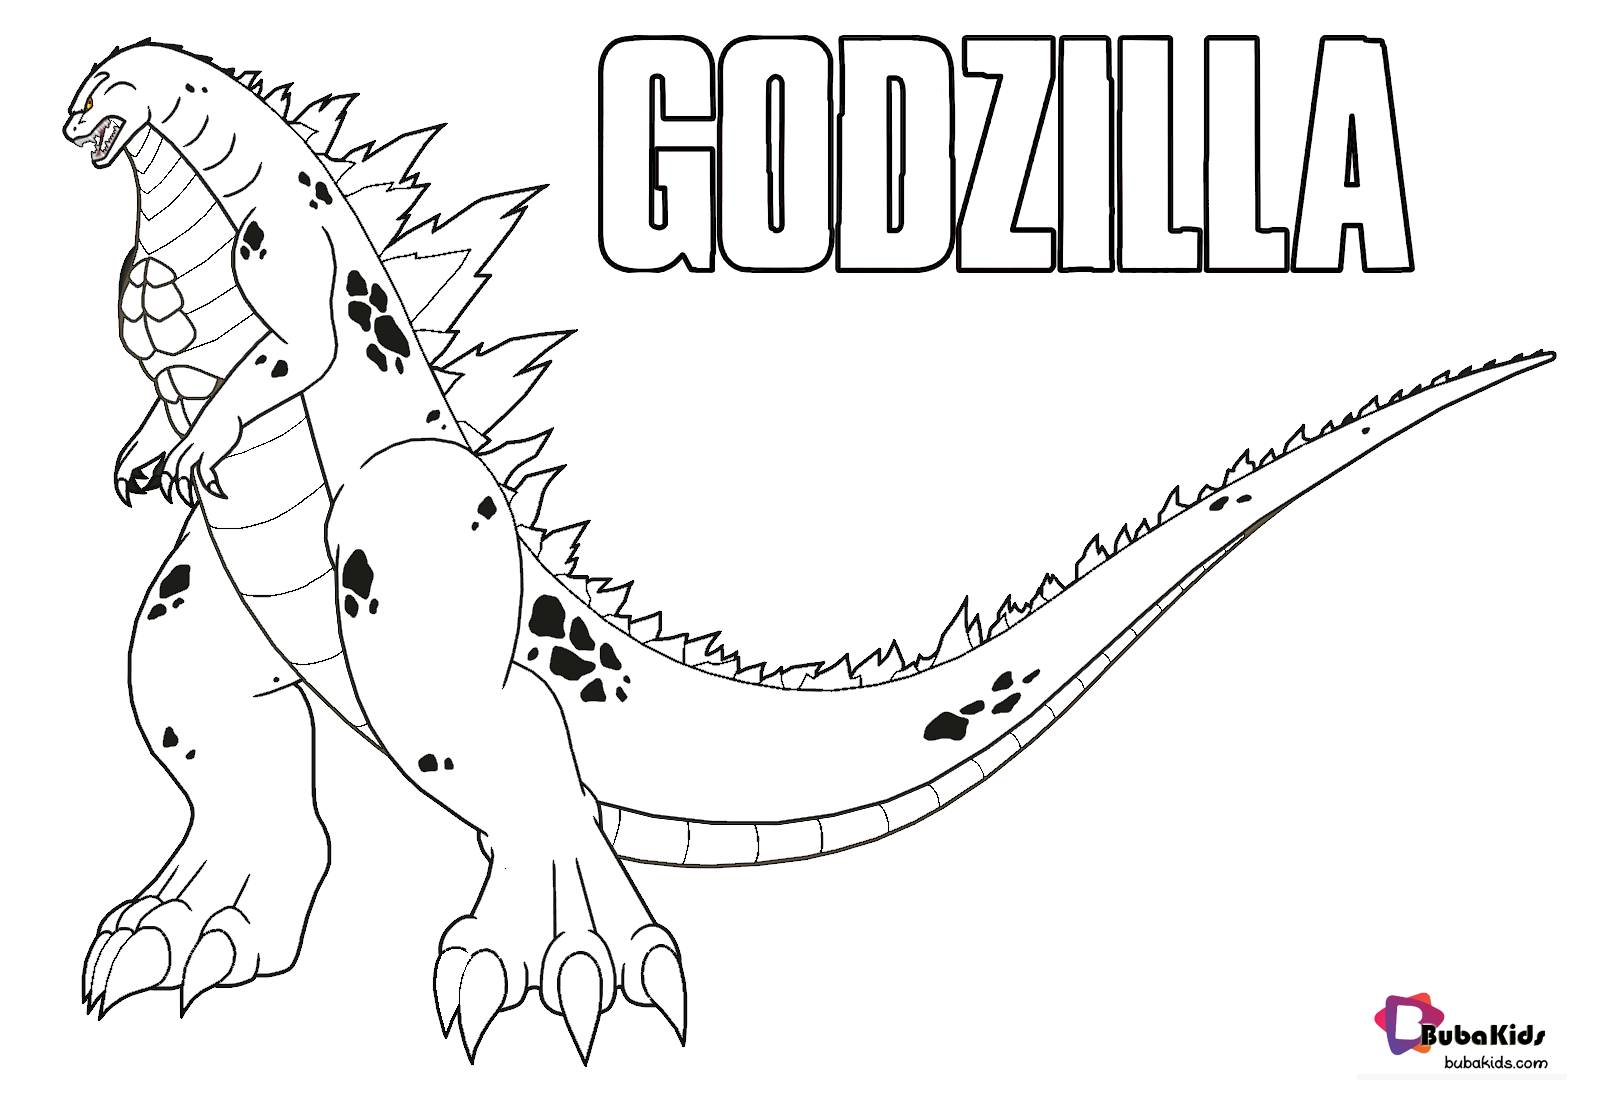 Free Printable Godzilla Coloring Pages For Kids Godzilla King Of Monsters Godzilla Kingofmon Coloring Pages For Kids Coloring Pages Monster Coloring Pages